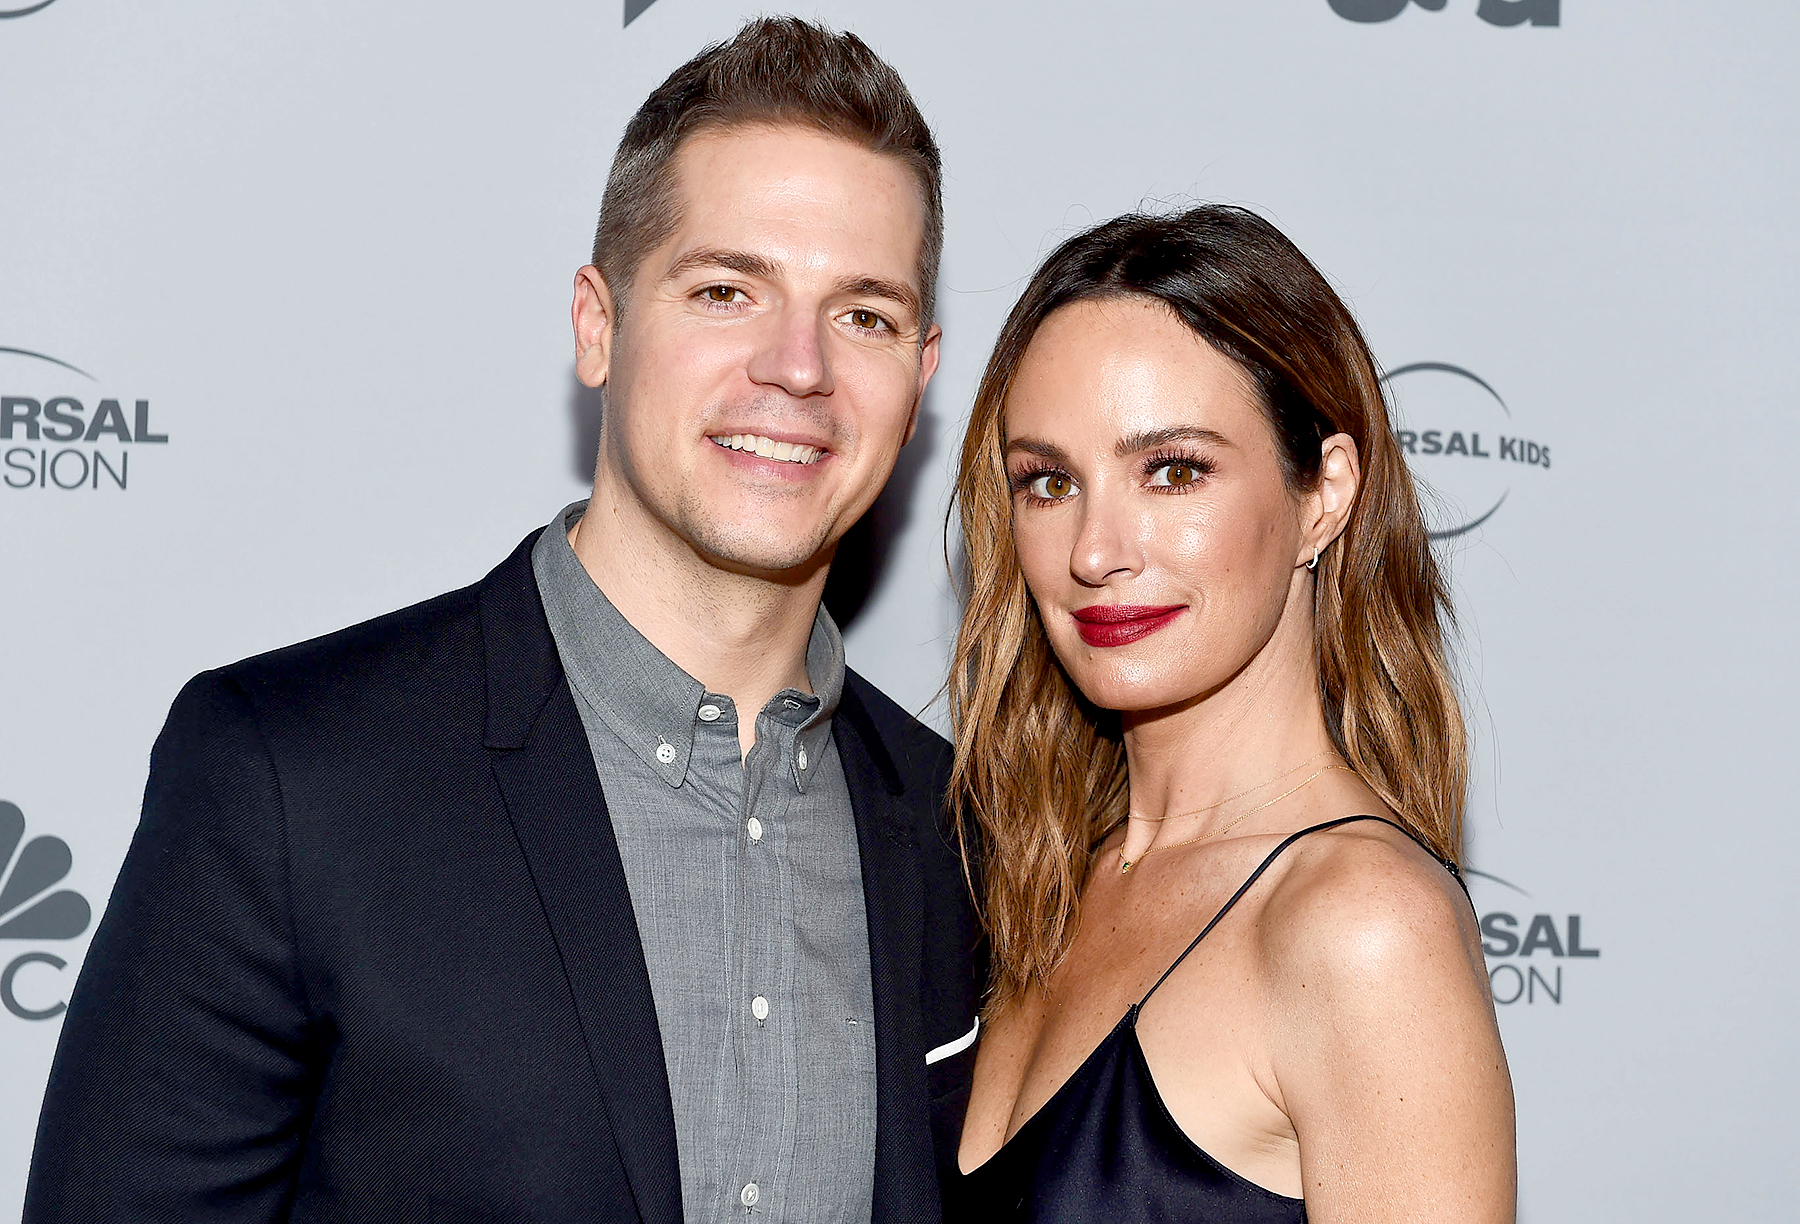 Jason-Kennedy-and-Catt-Sadler - Jason Kennedy and Catt Sadler arrive at NBCUniversal's Press Junket at Beauty & Essex on November 13, 2017 in Los Angeles, California.